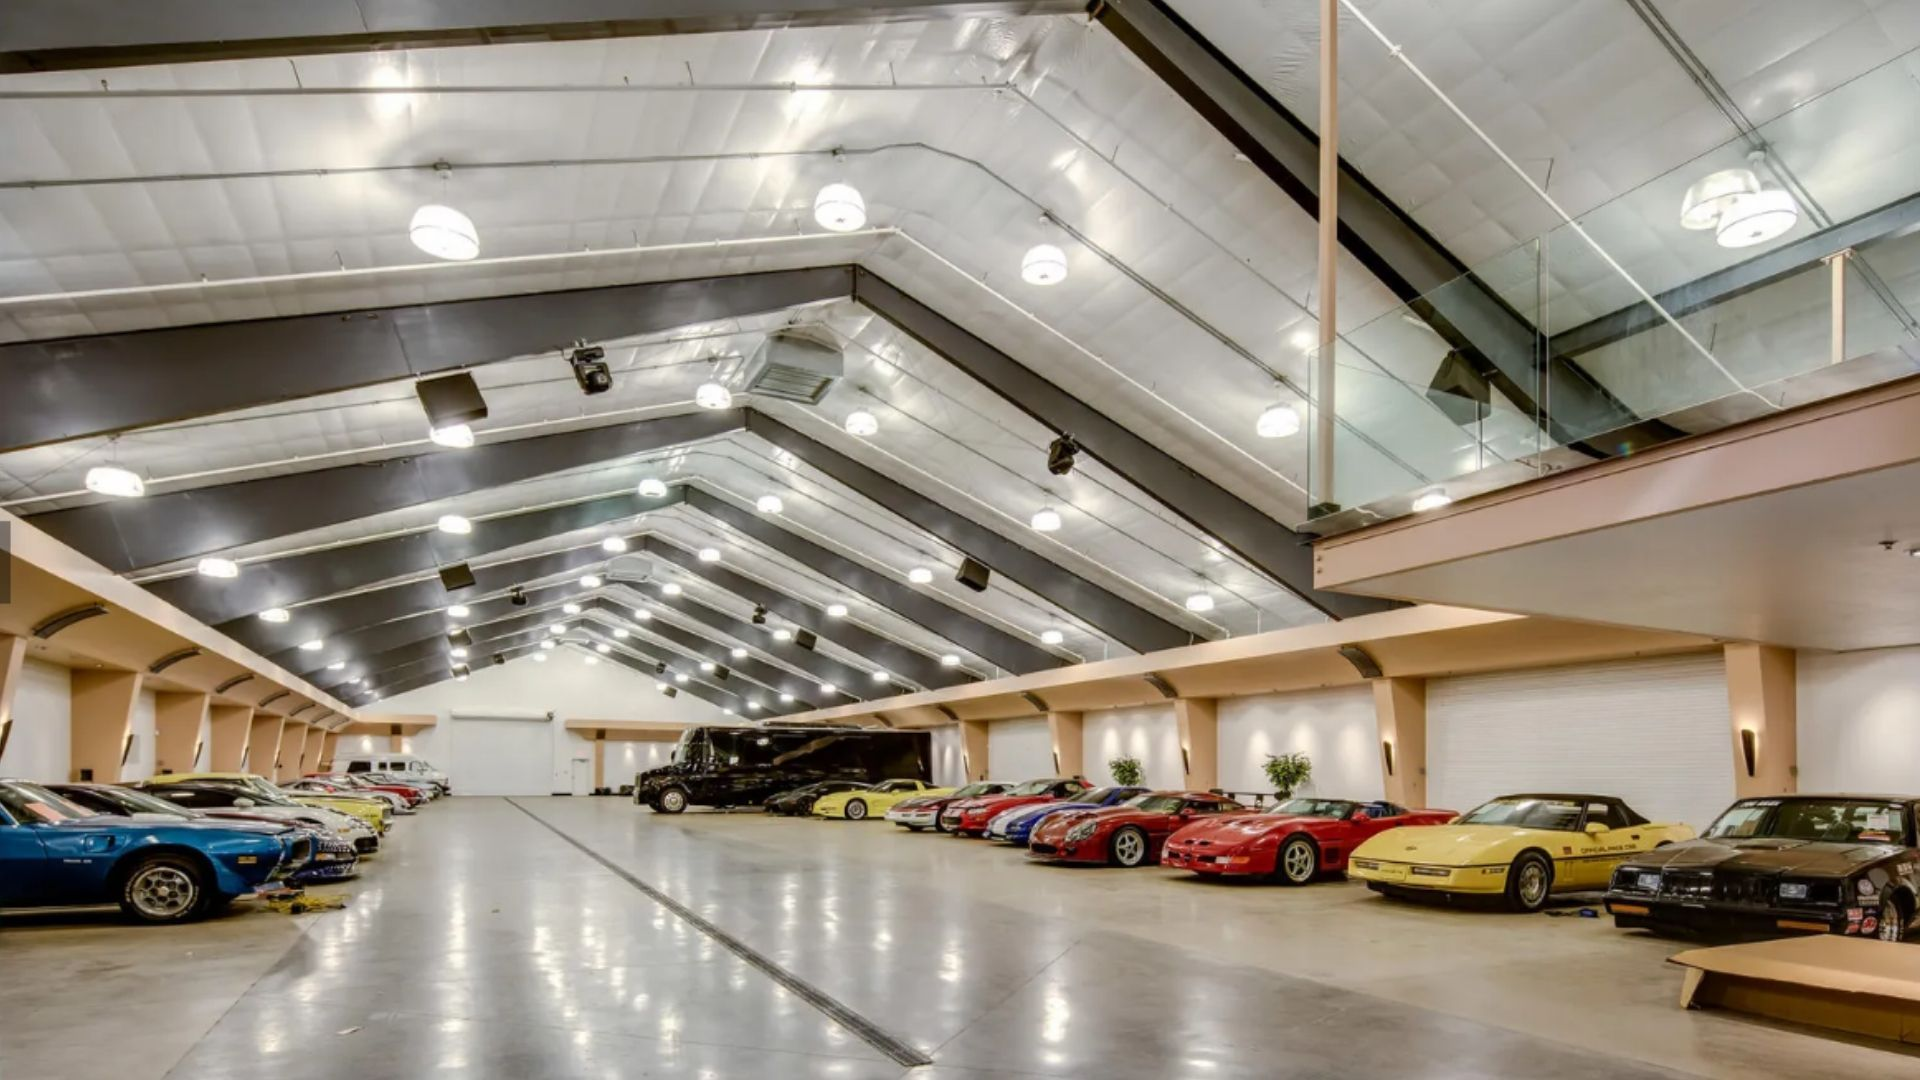 Colorado Mansion For Sale Features A Massive Garage